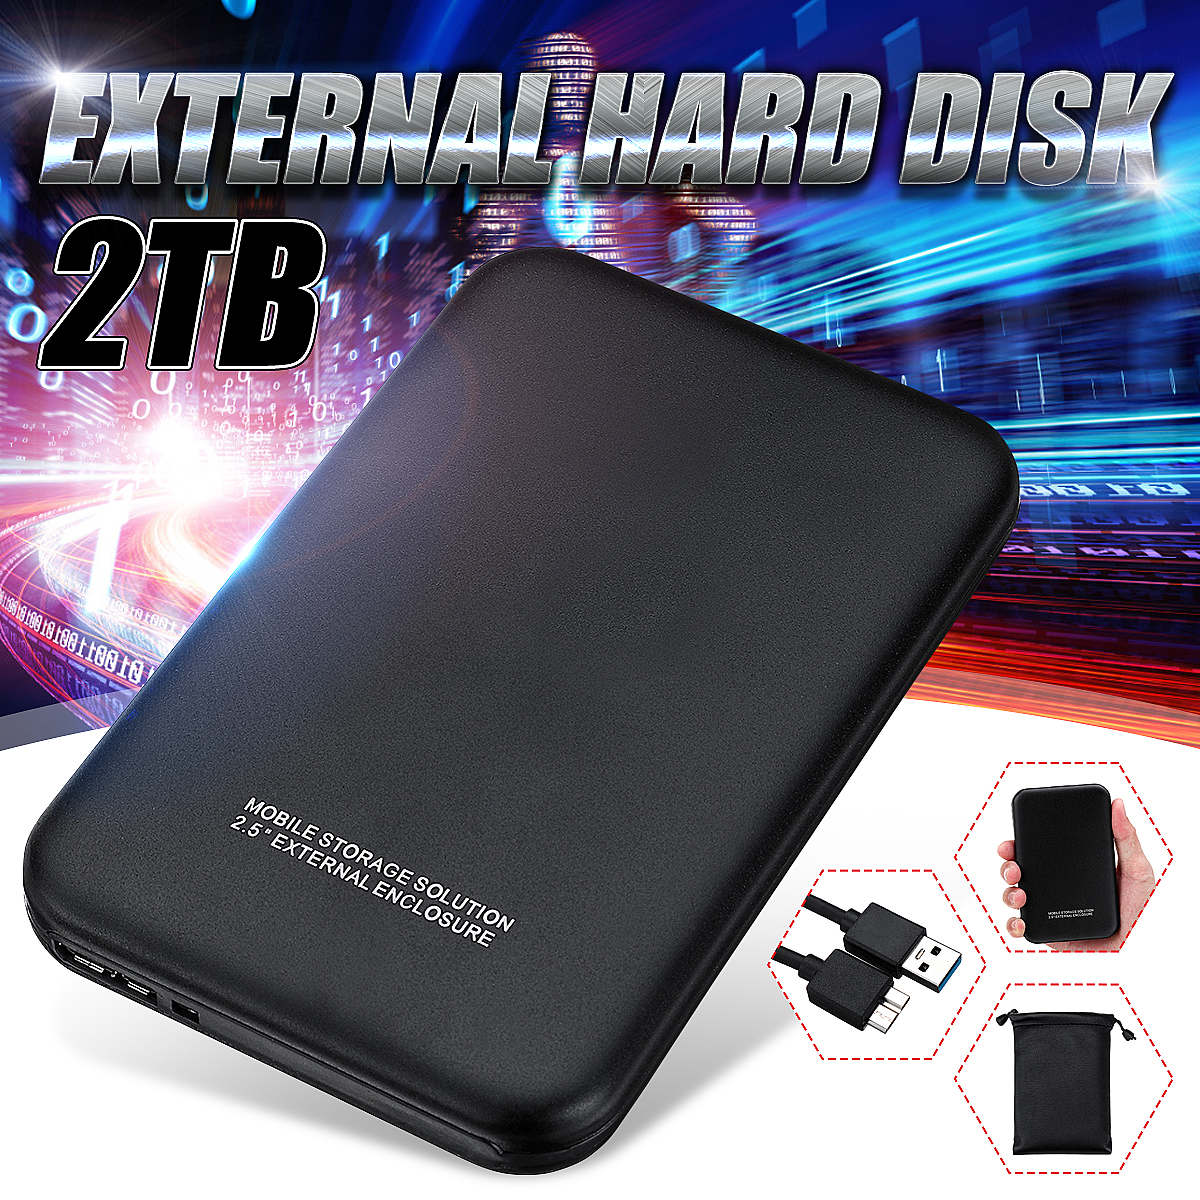 USB 3.0 PC Hard Drive 1/2T Neutral Hard Drive Black Upgrade High Transmission Support HDD/SSD With USB Cable Business